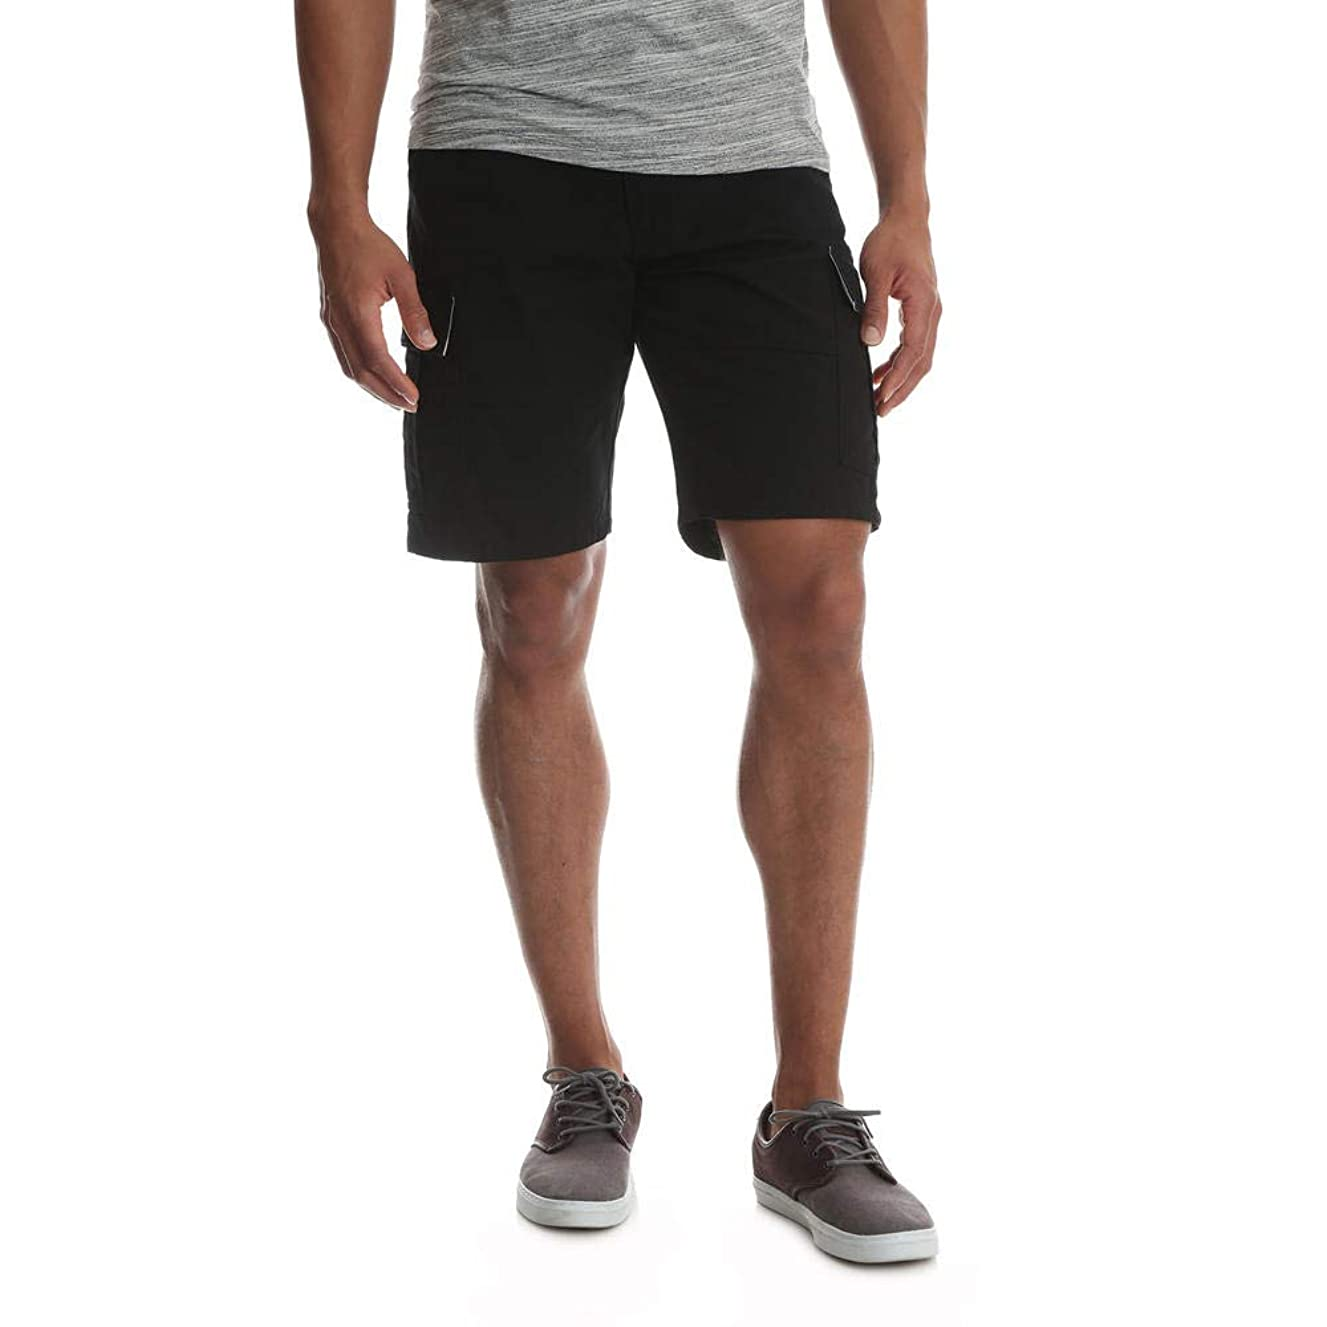 Wrangler Men's Big and Tall Relaxed Fit Cargo Shorts